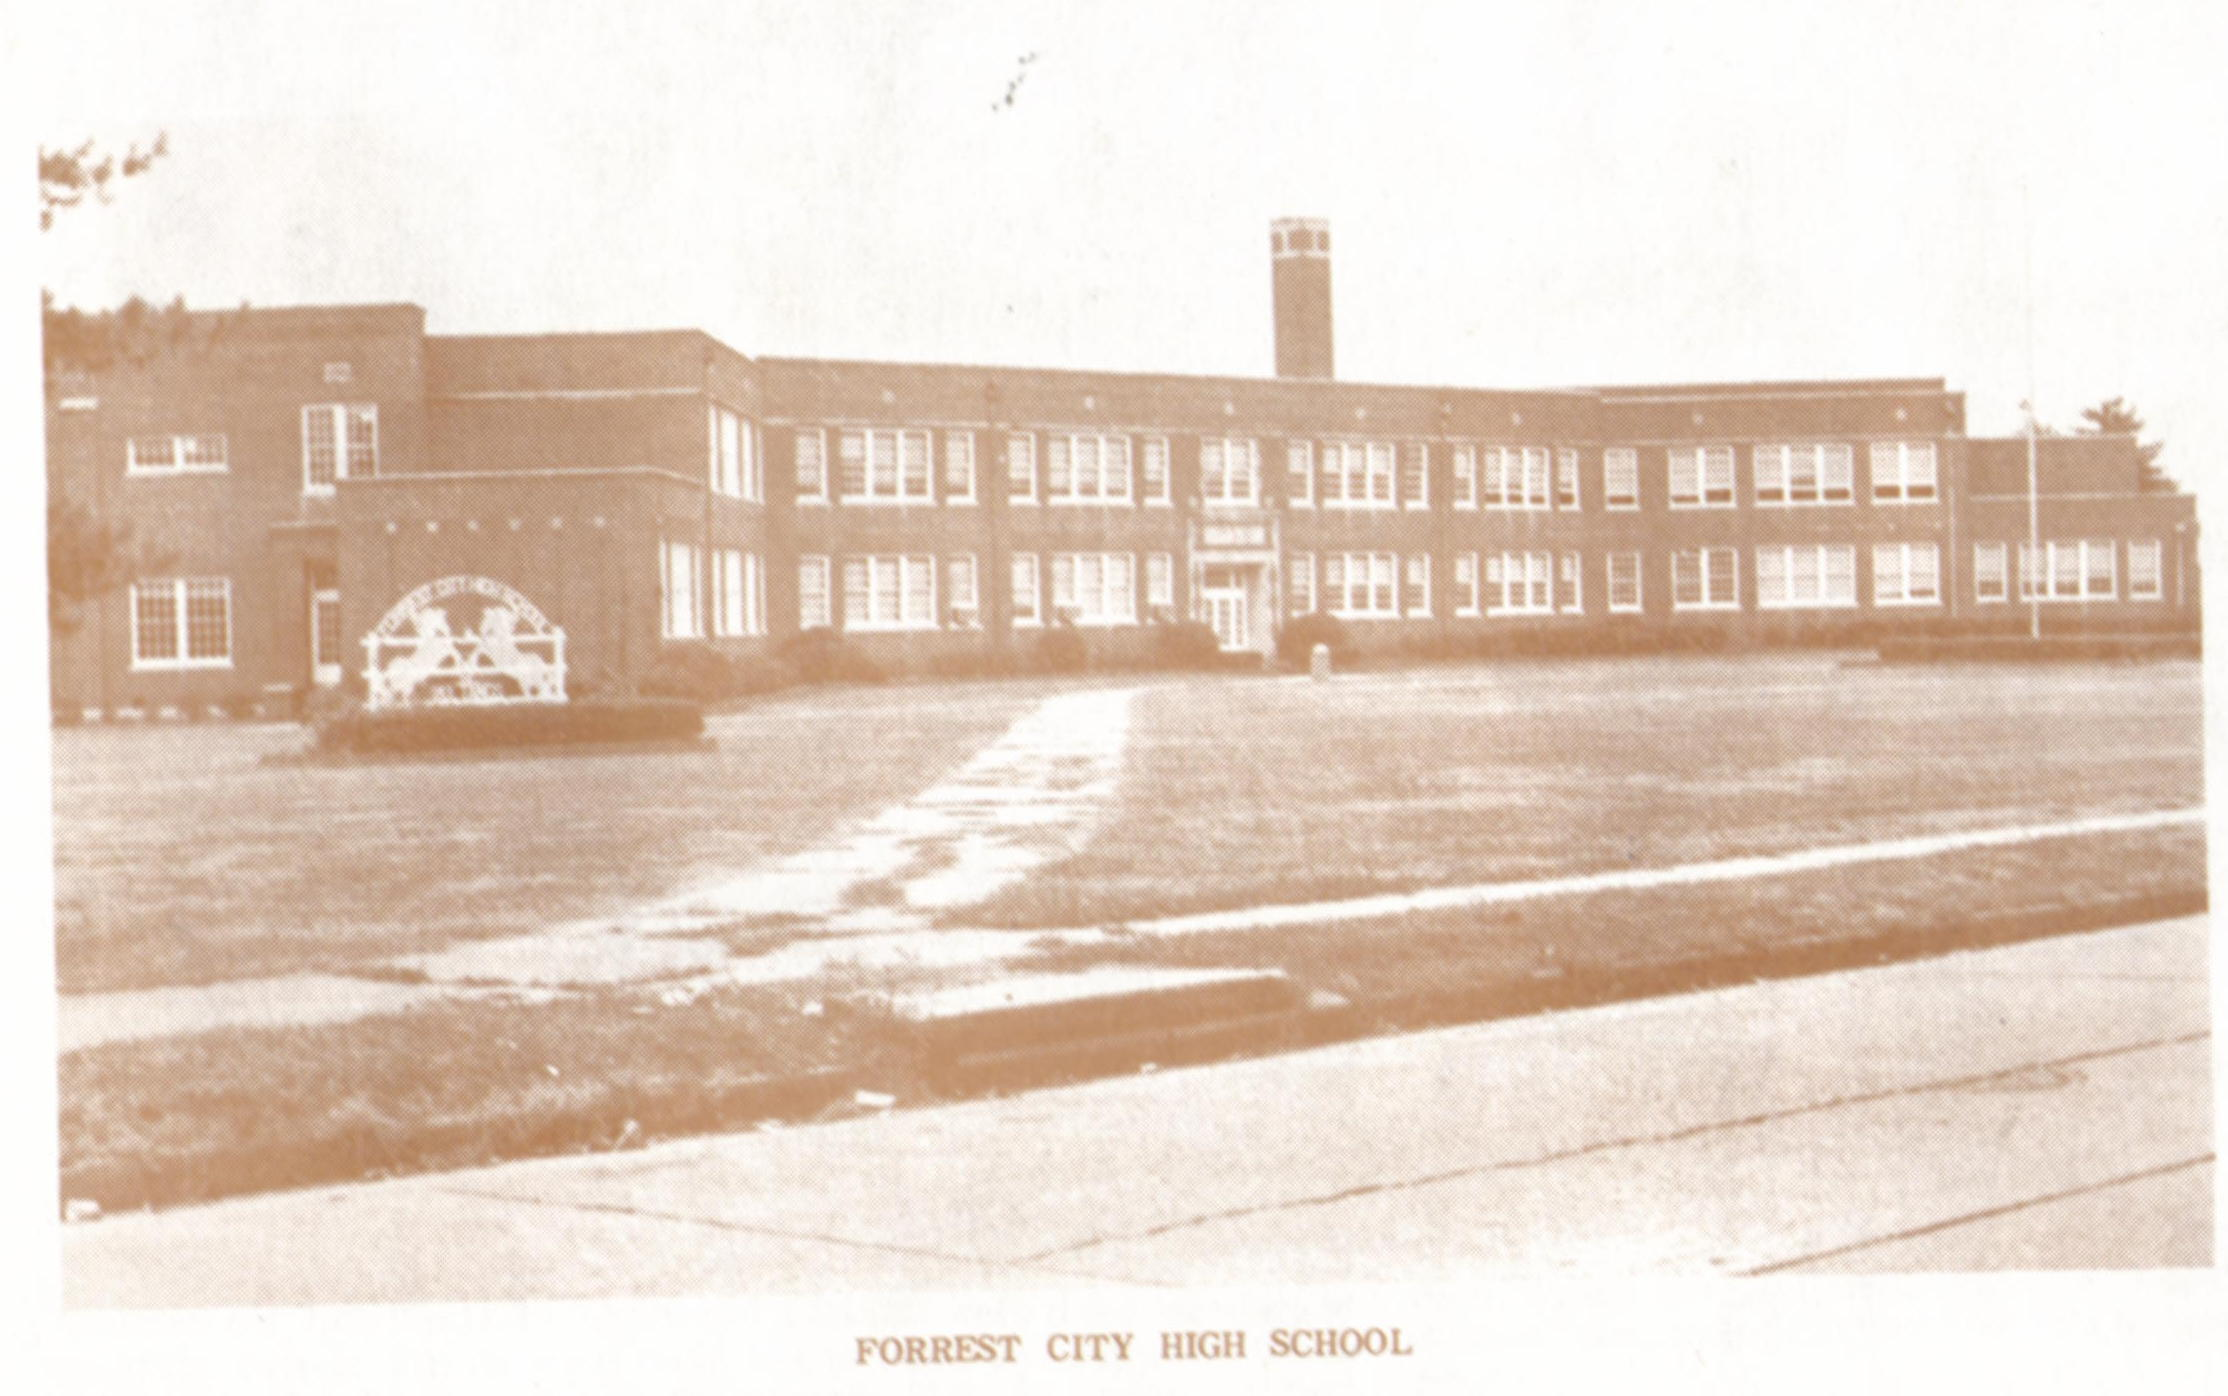 http://www.argenweb.net/stfrancis/images/FCHS1931.jpg